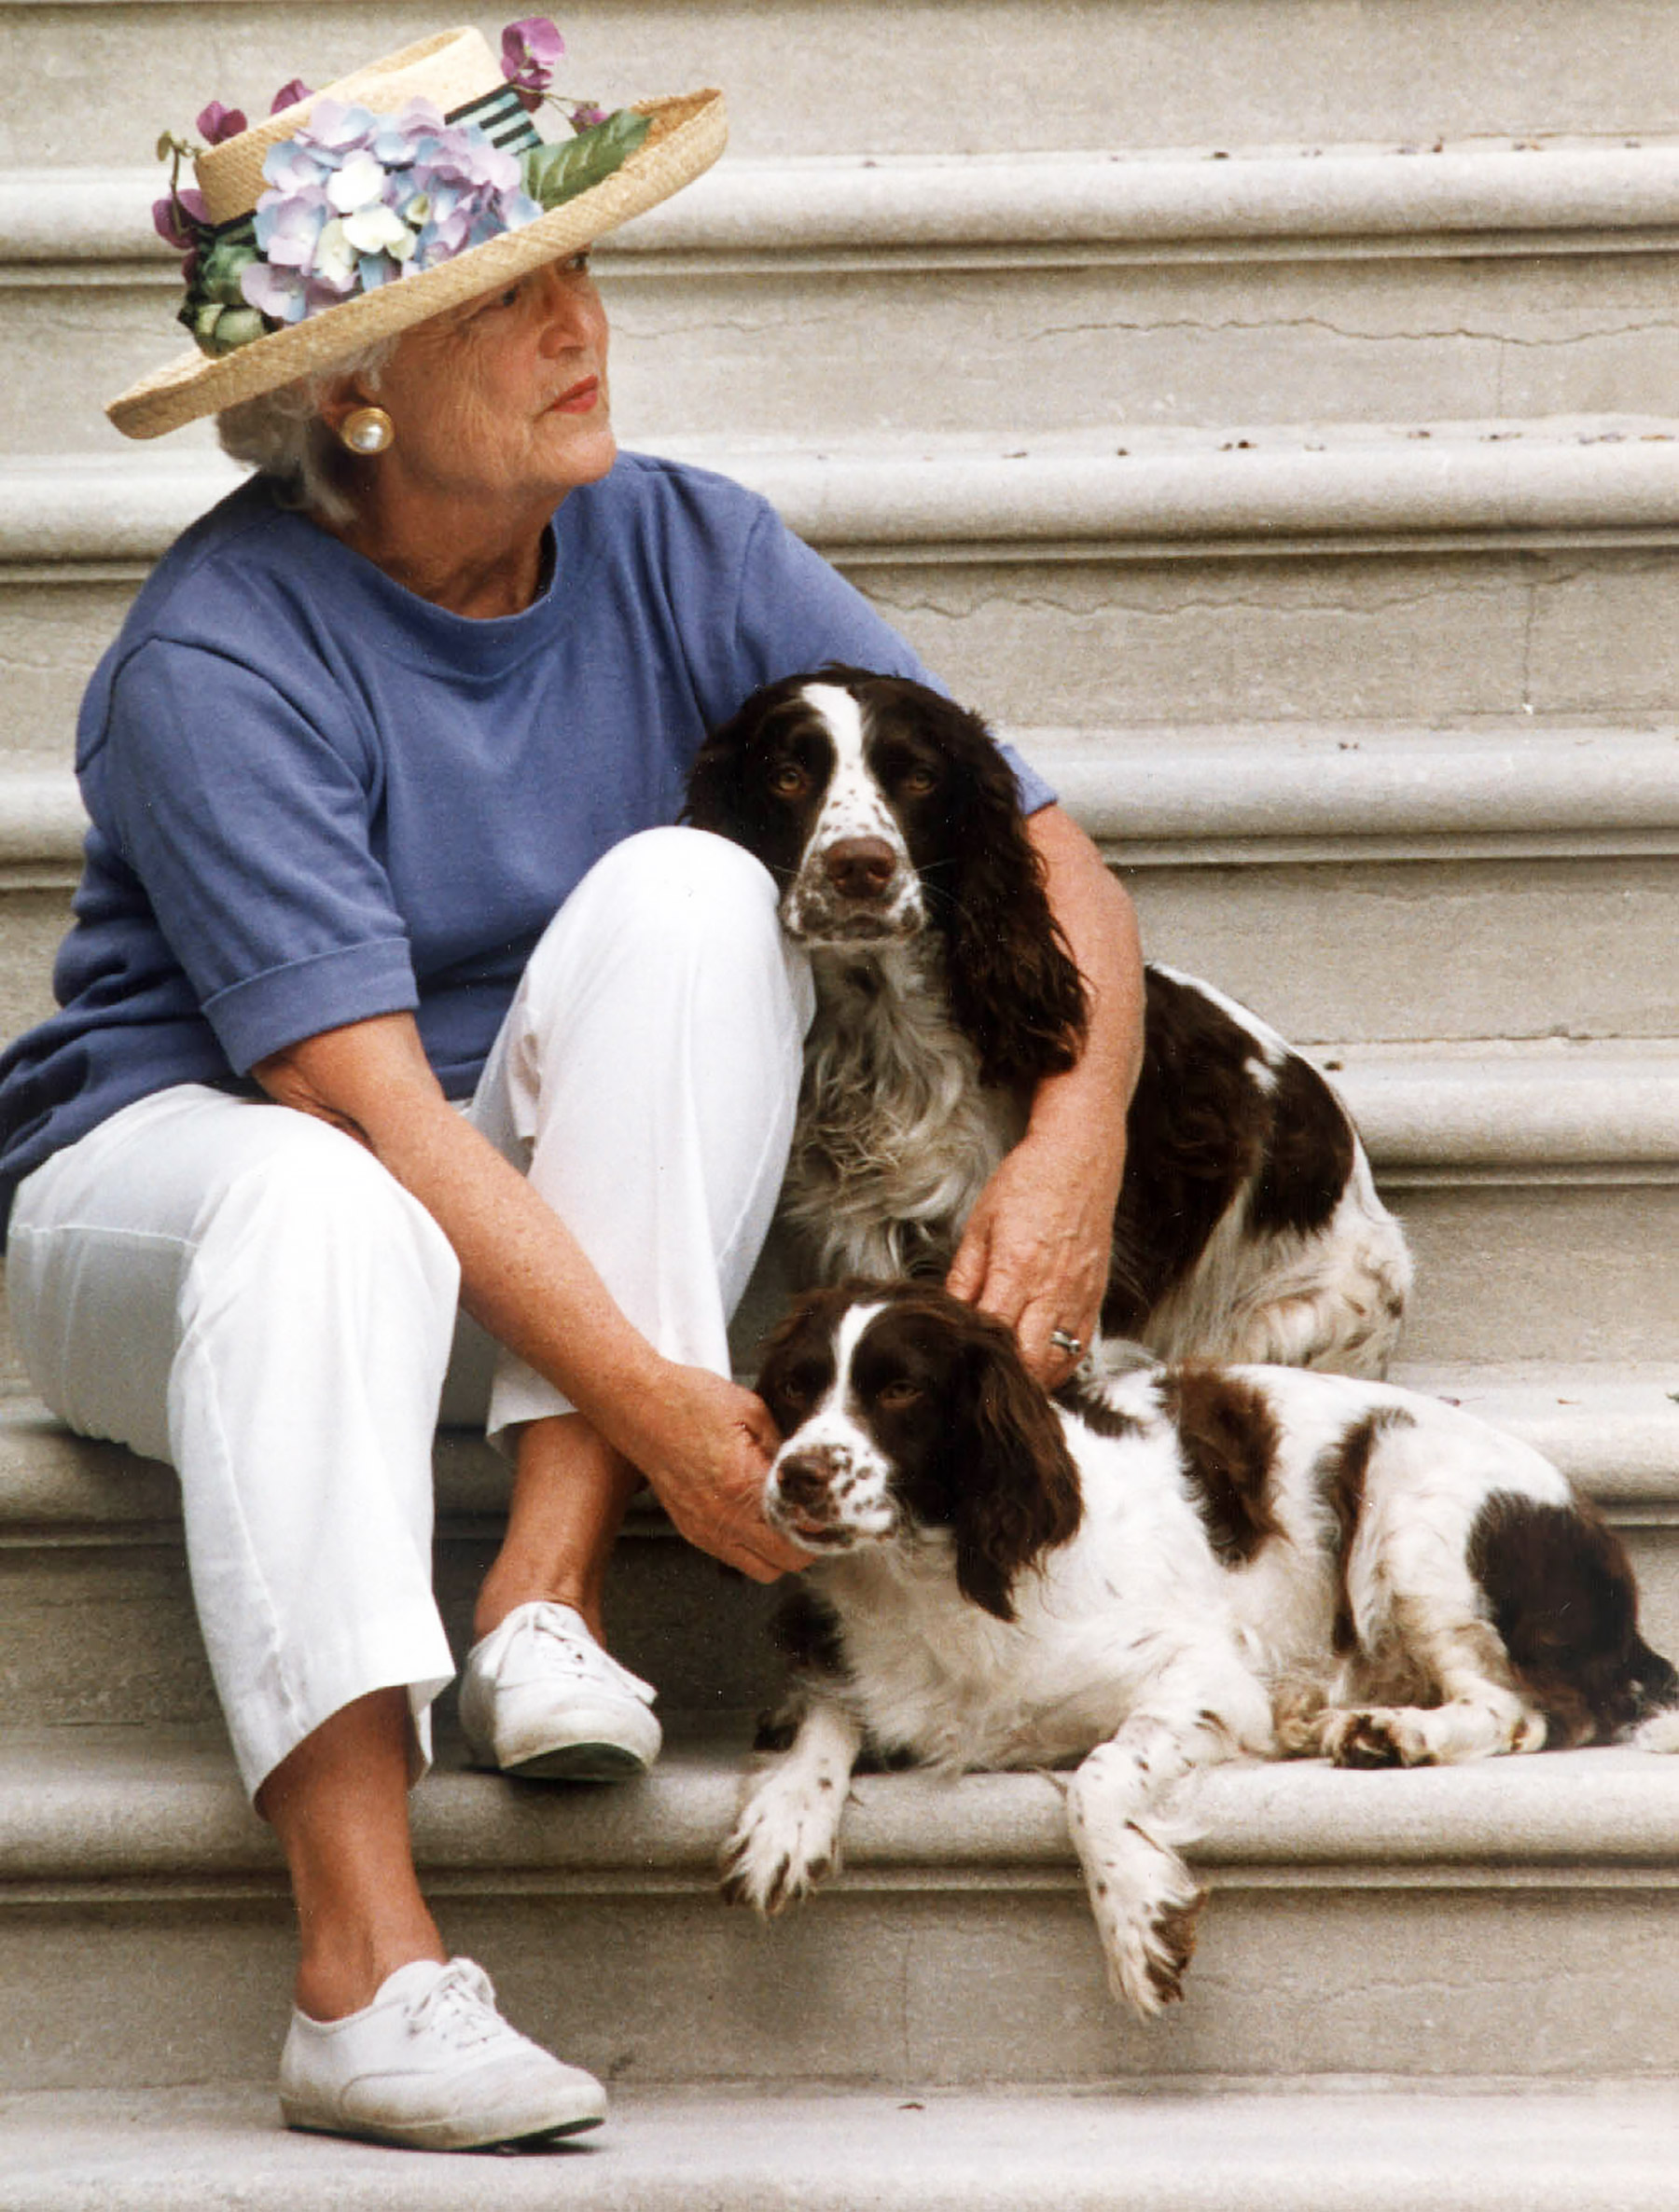 barbara george bush spaniel